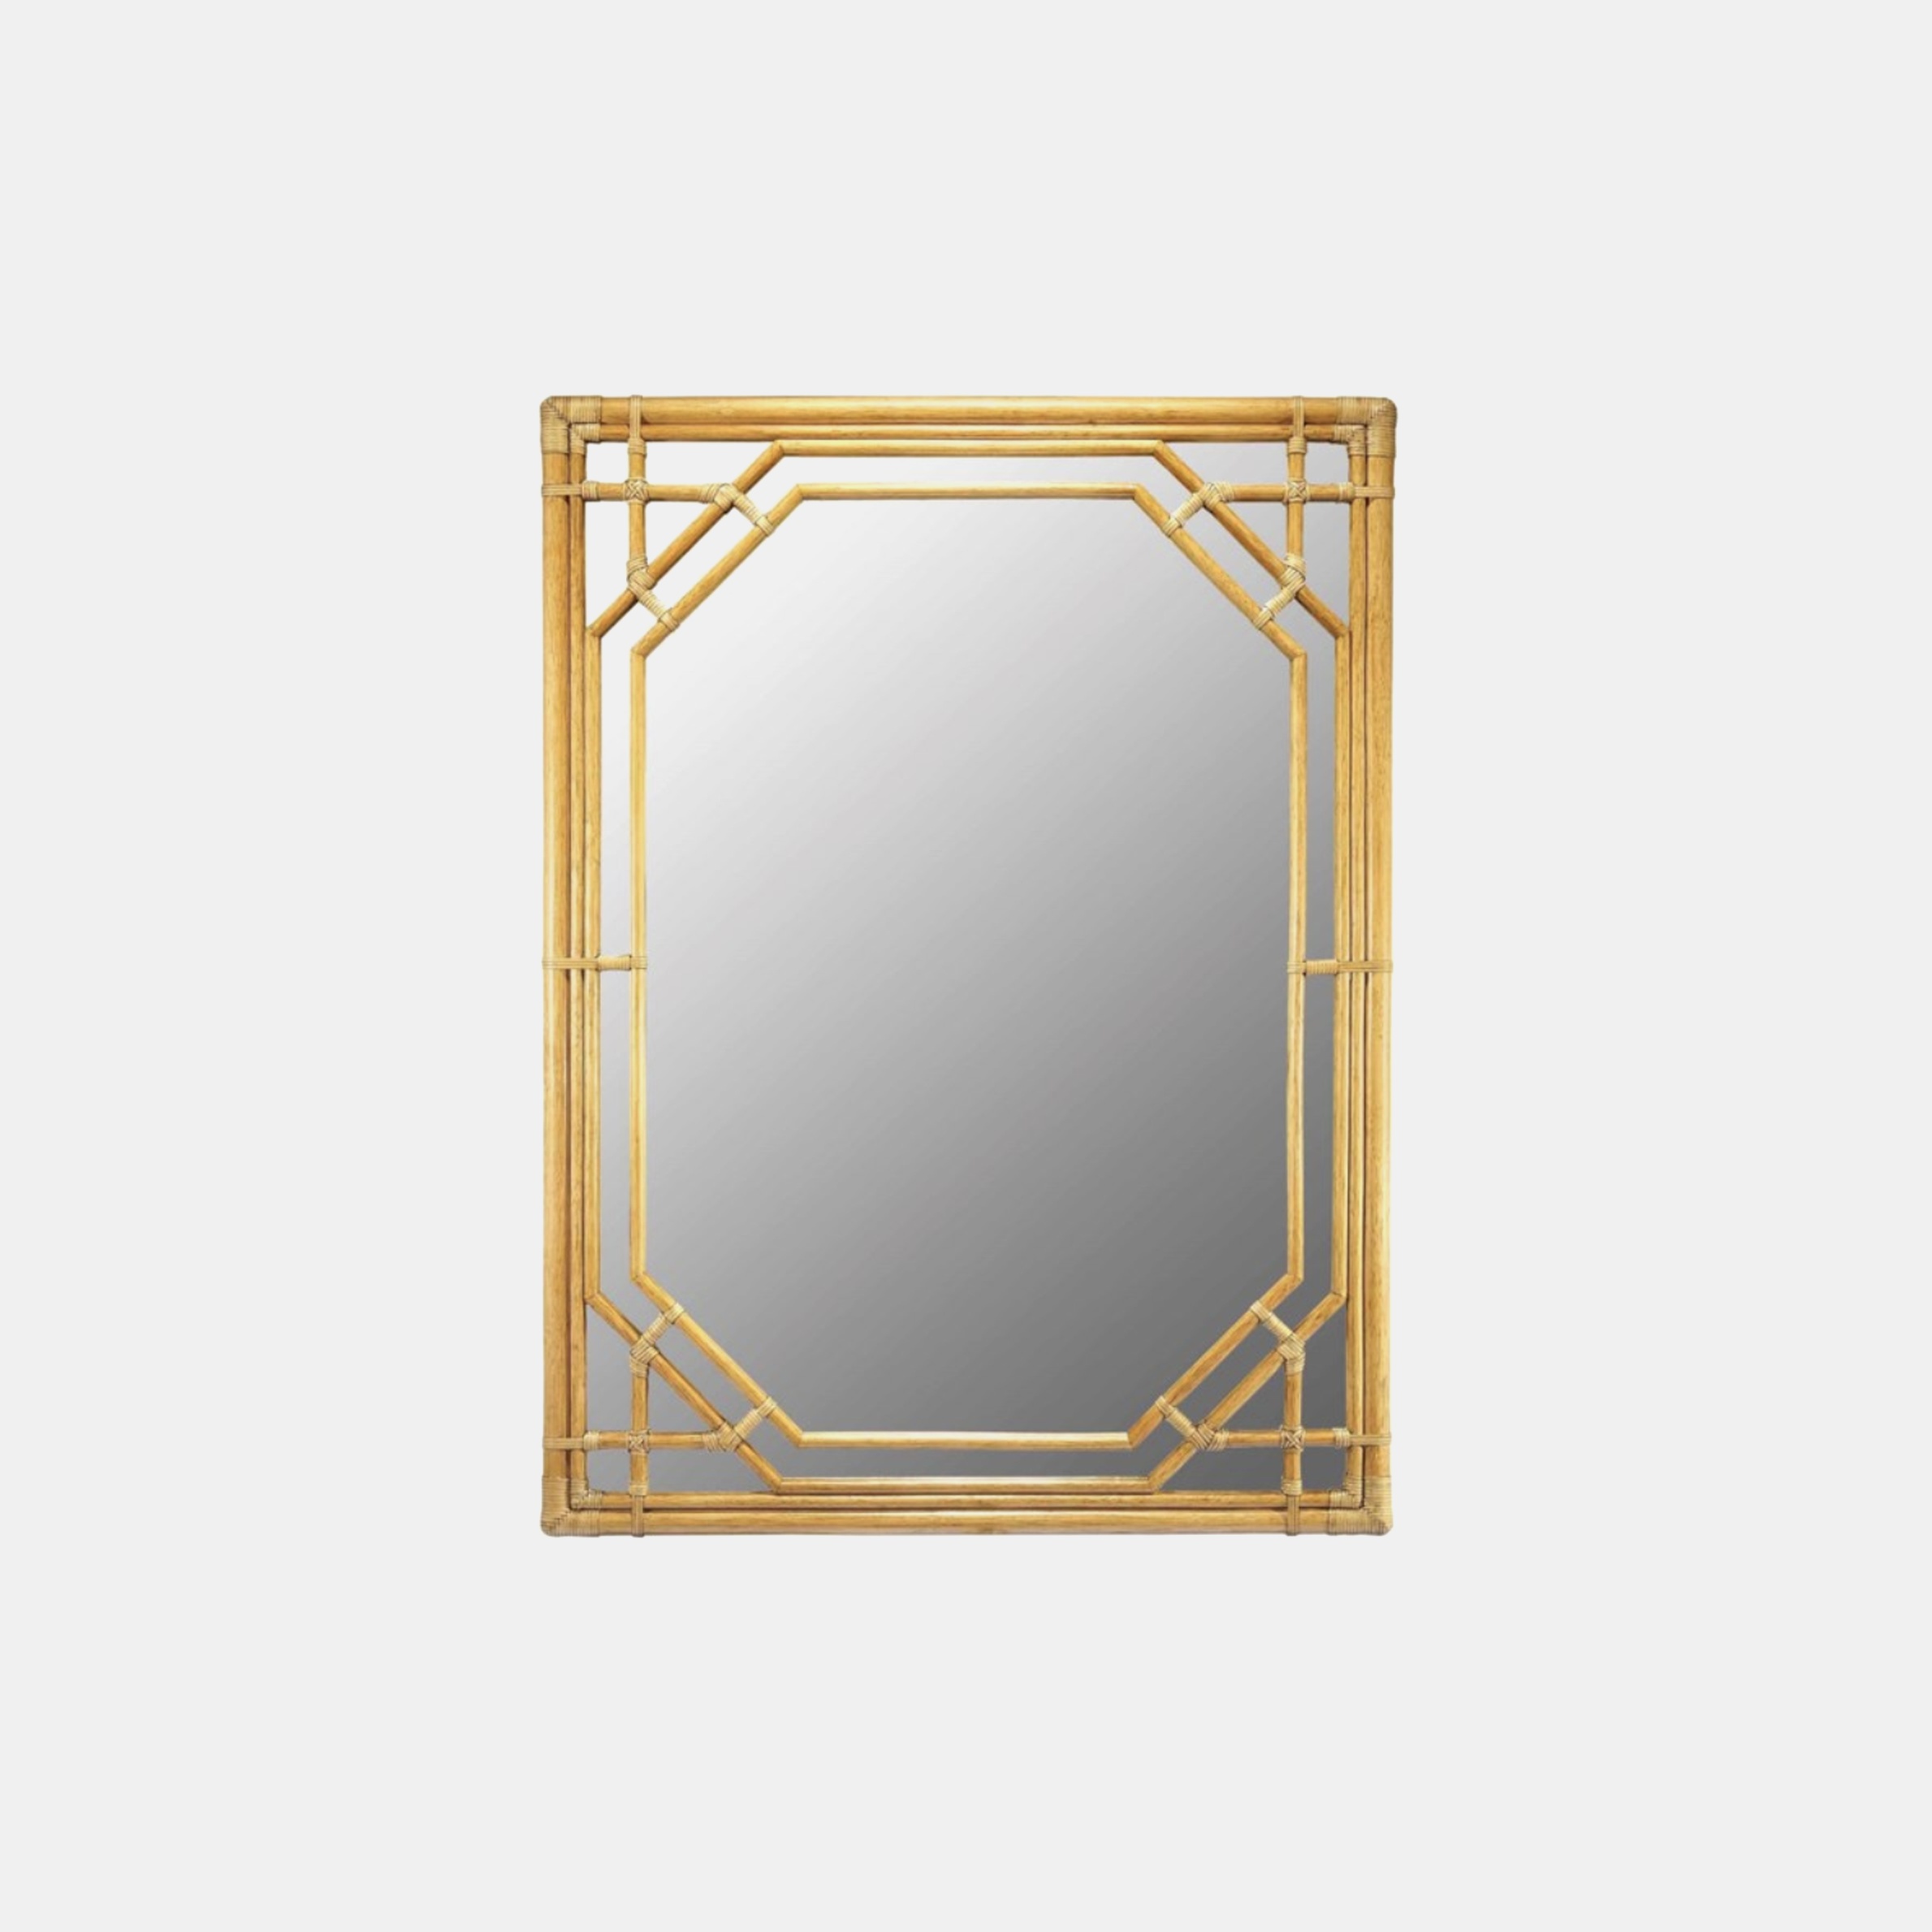 "Regeant Rectangular Mirror  36"" x 48"" Available in clove (shown) and nutmeg. SKU1159SLM"